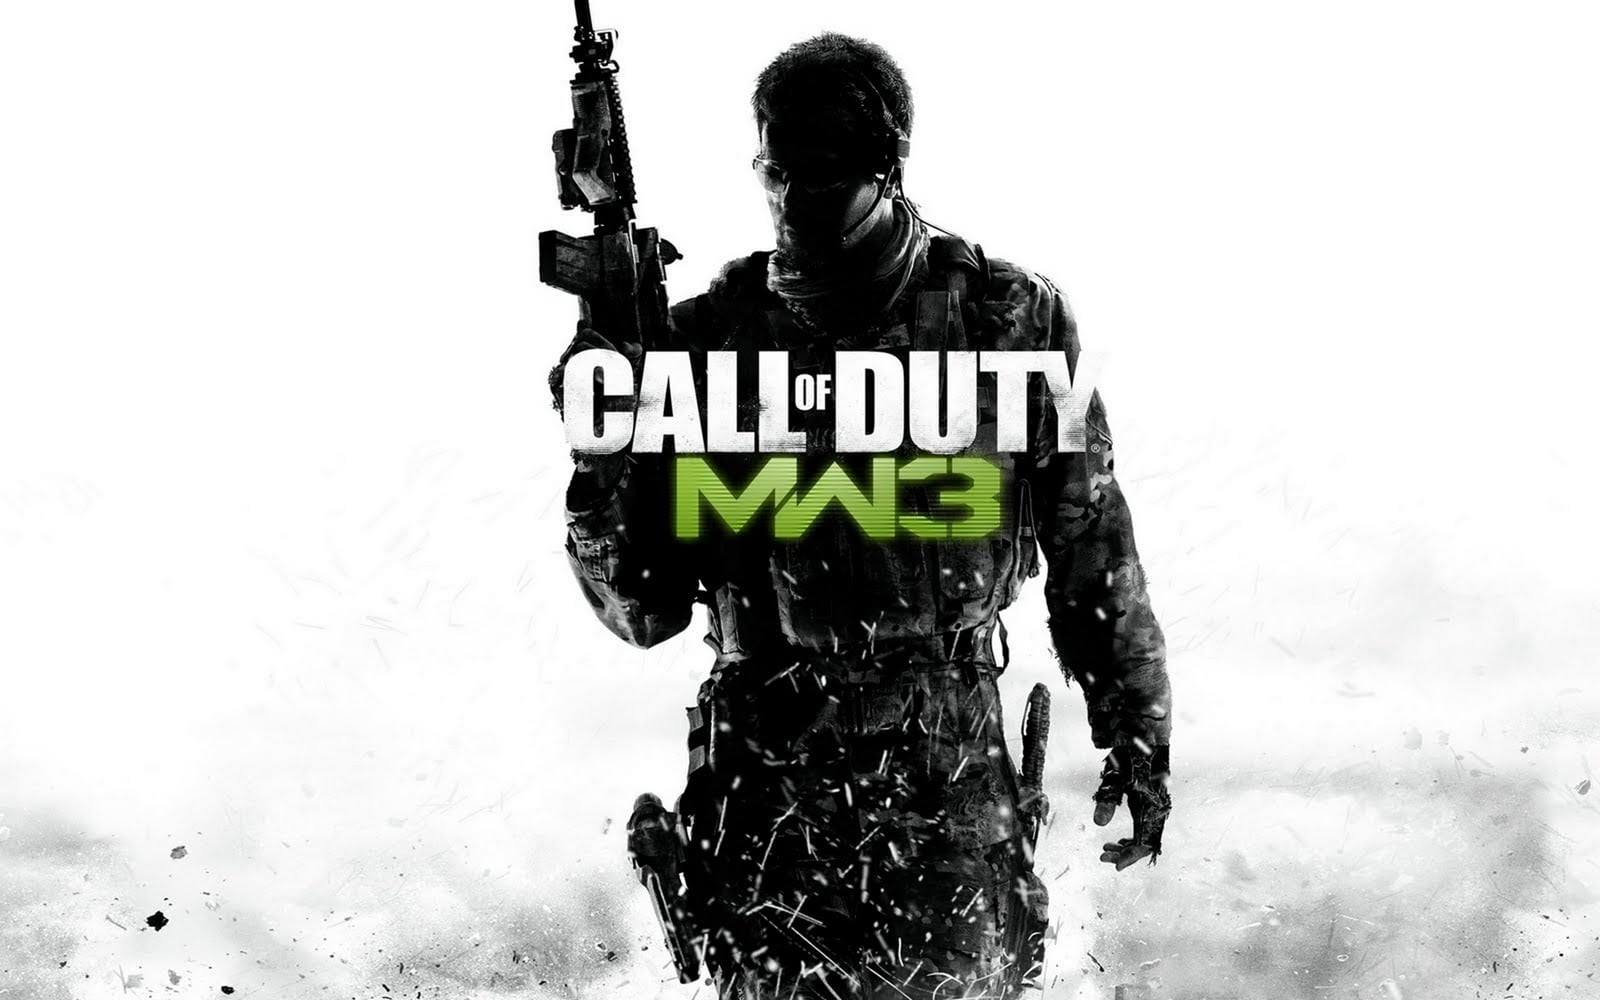 Call Of Duty Modern Warfare 3 Full Version Free Download Games Predator